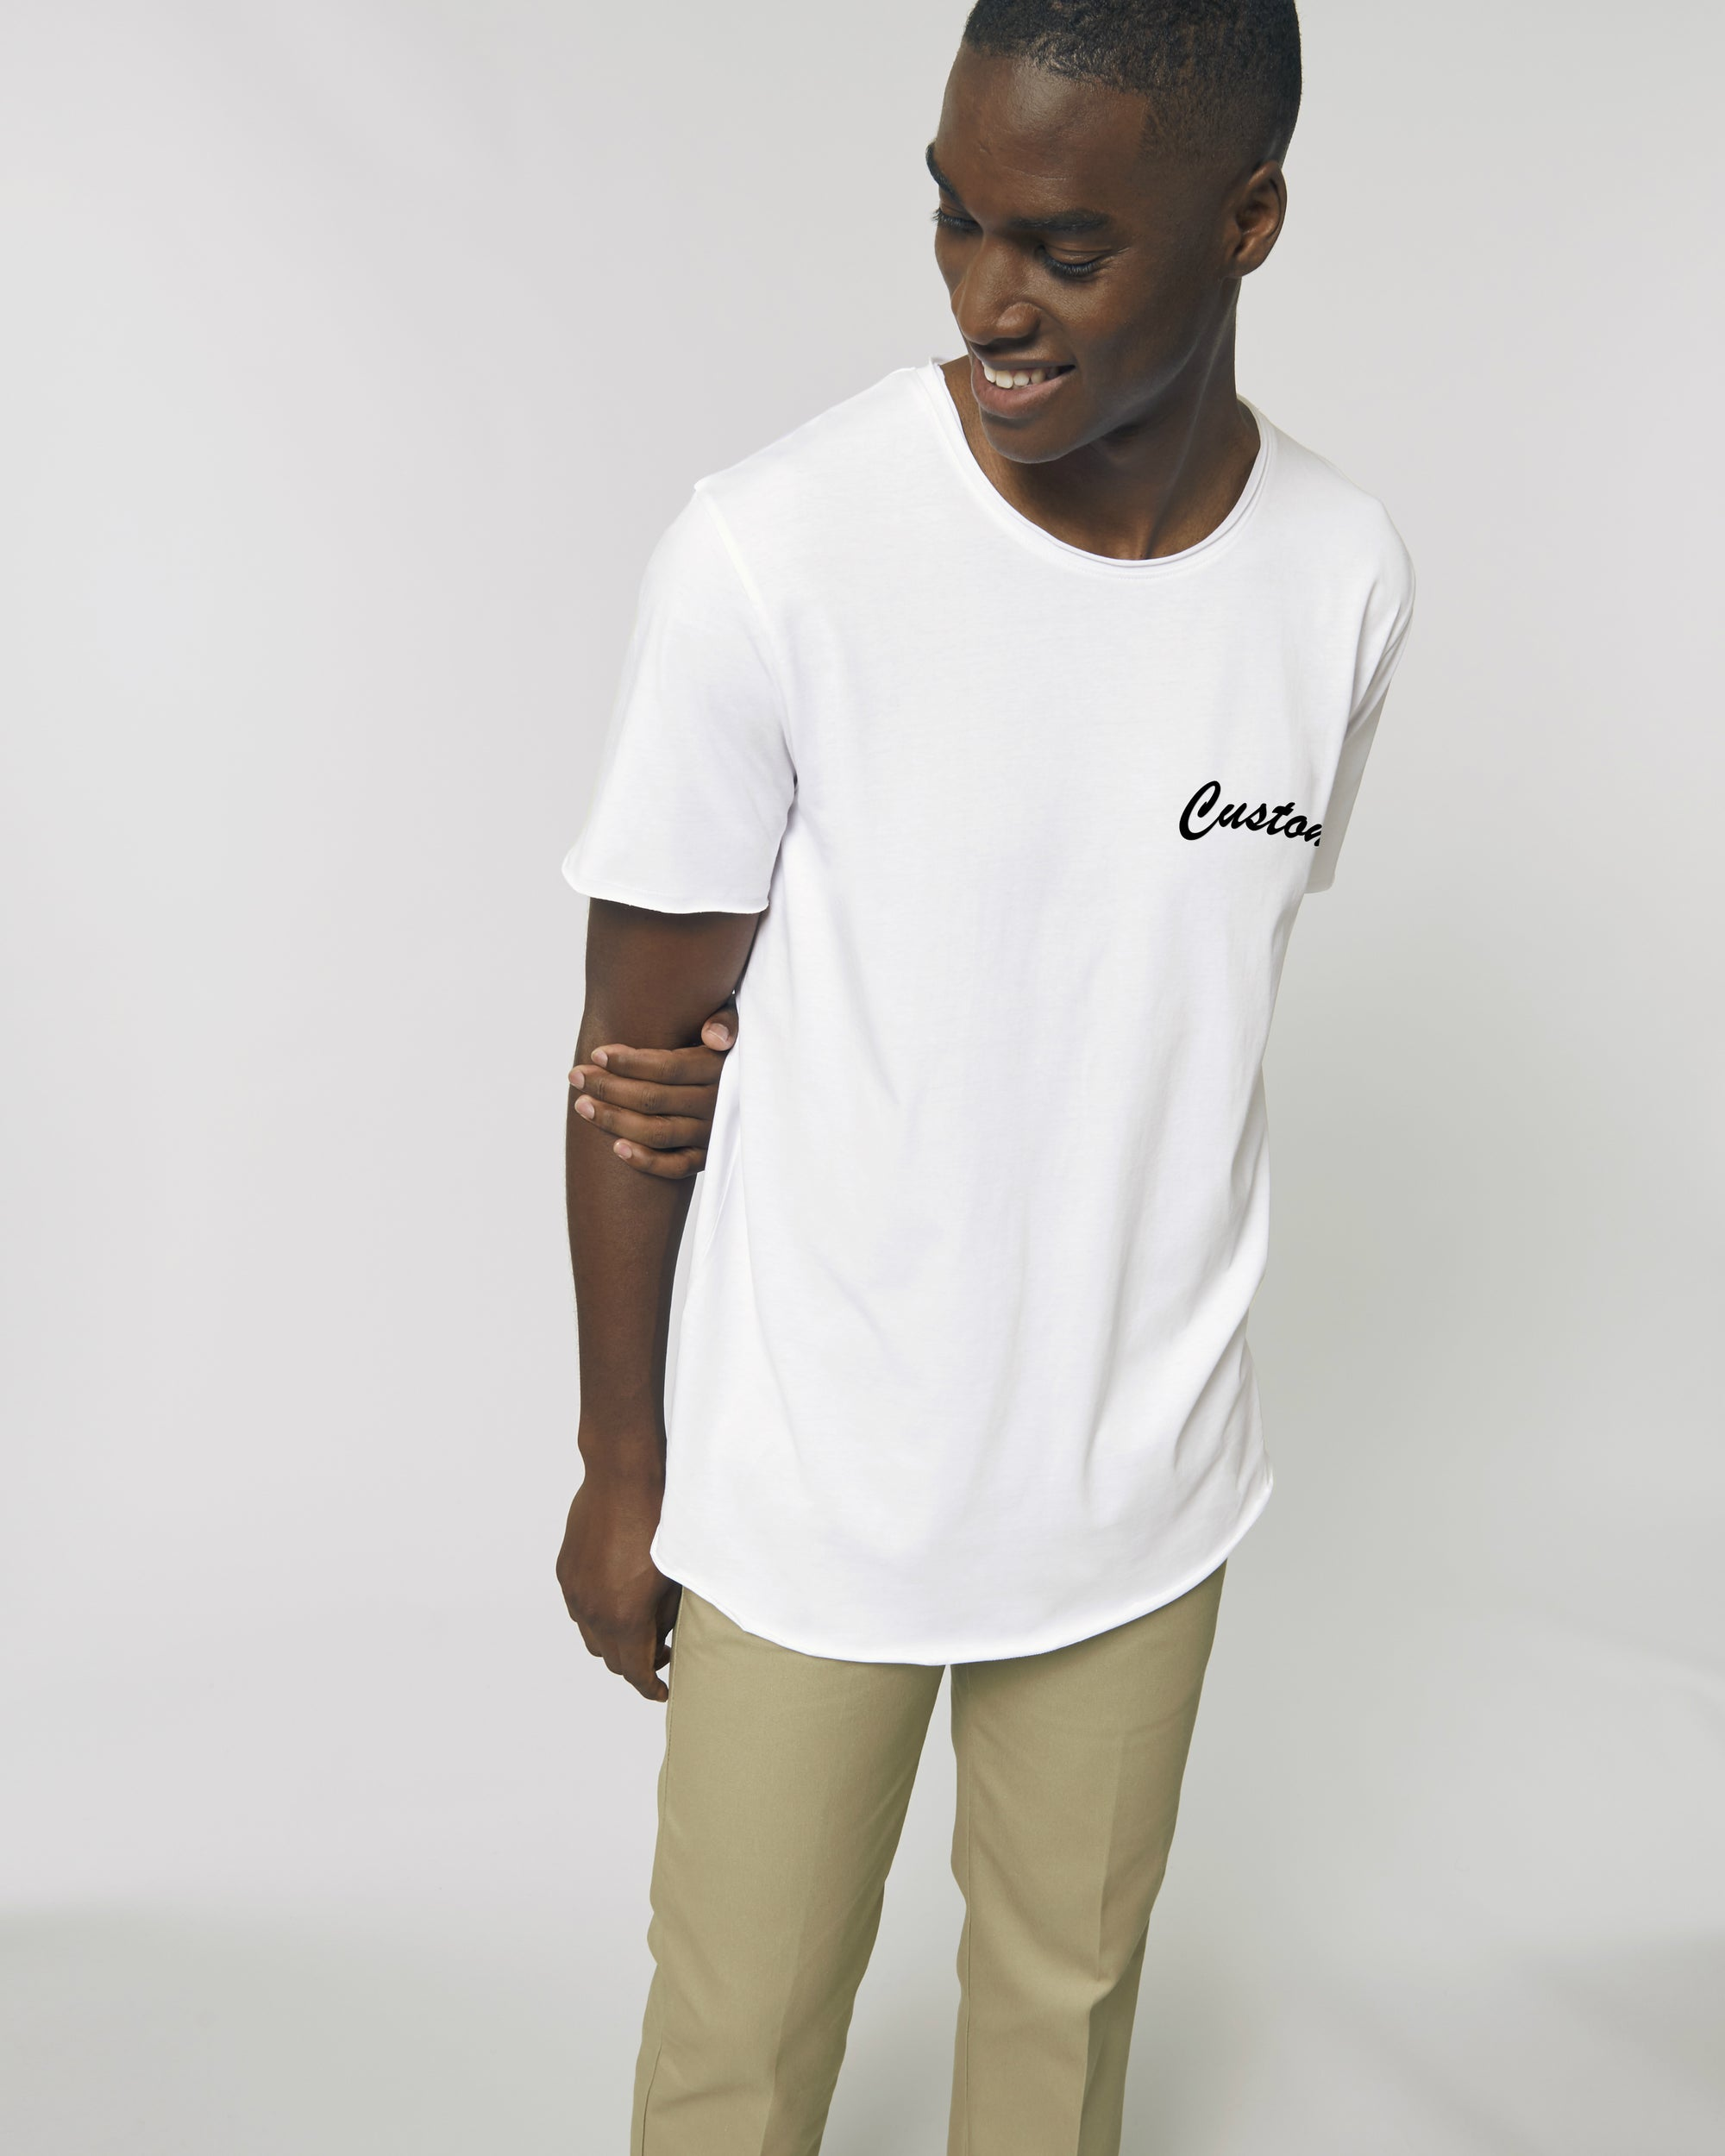 MEN'S RAW EDGE LONG LENGTH T-SHIRT - customisable left chest embroidery